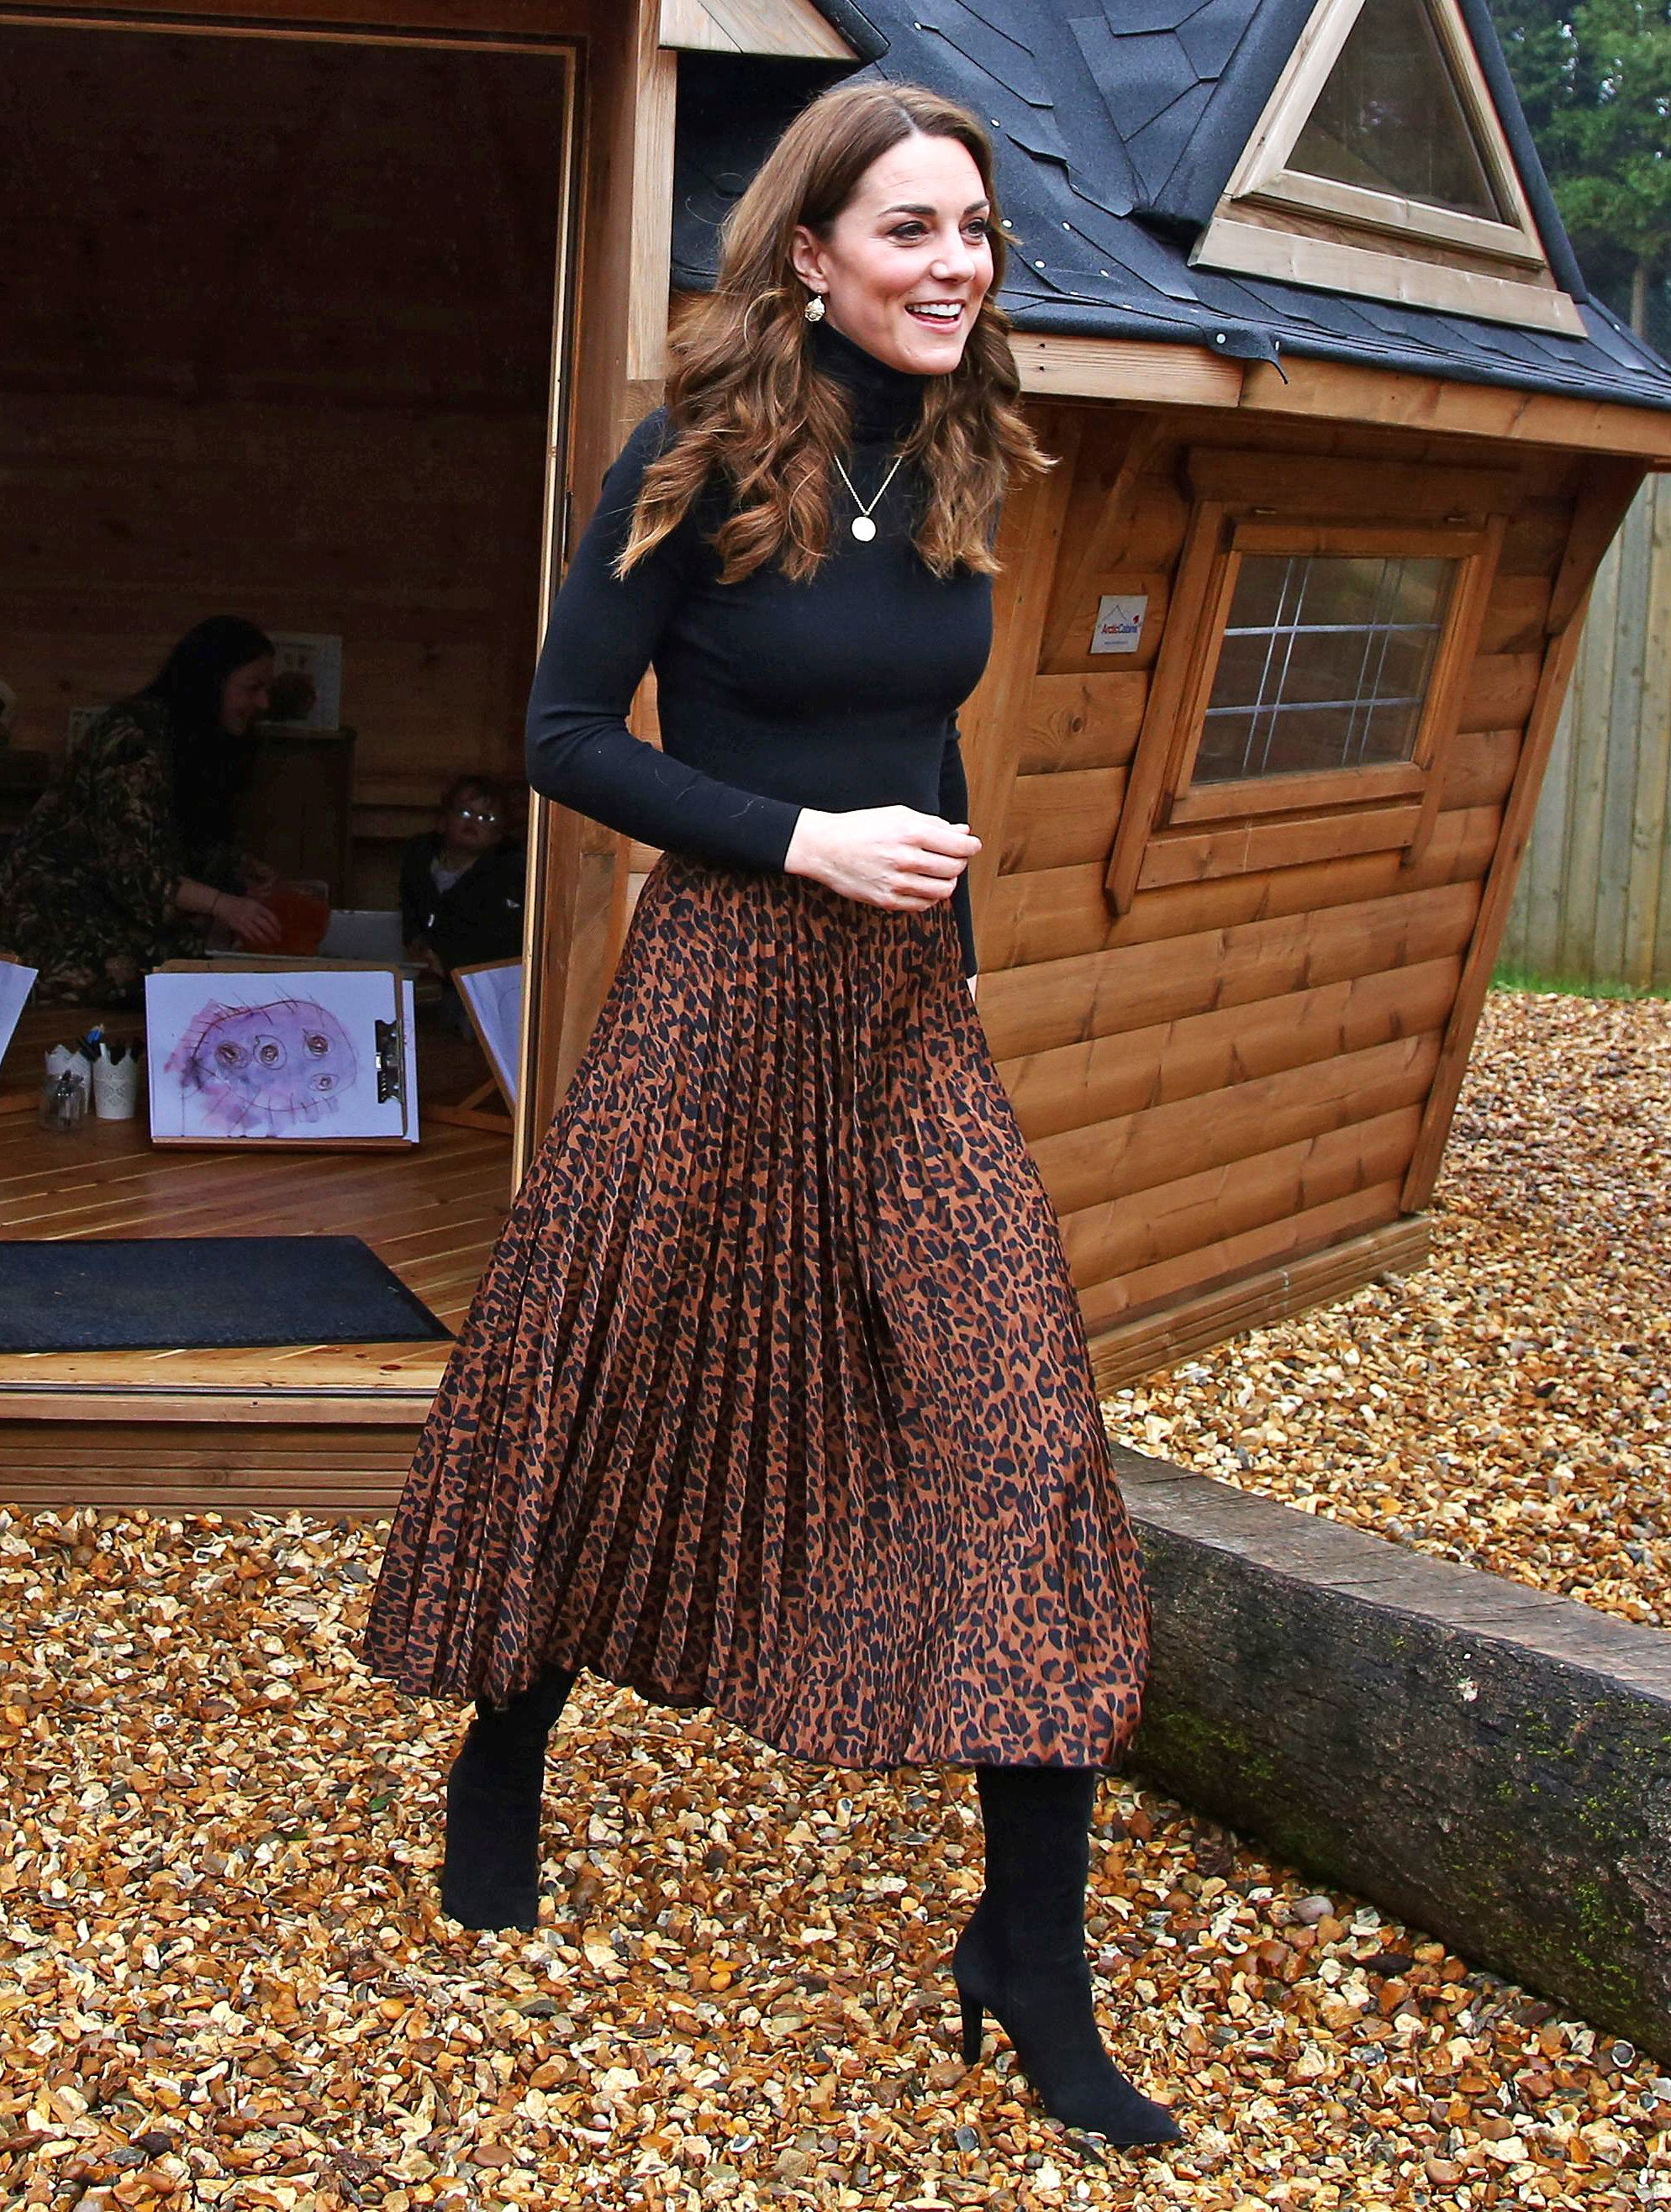 Kate Middleton Just Proved the Leopard Midi Skirt Trend Is Still Alive and Well